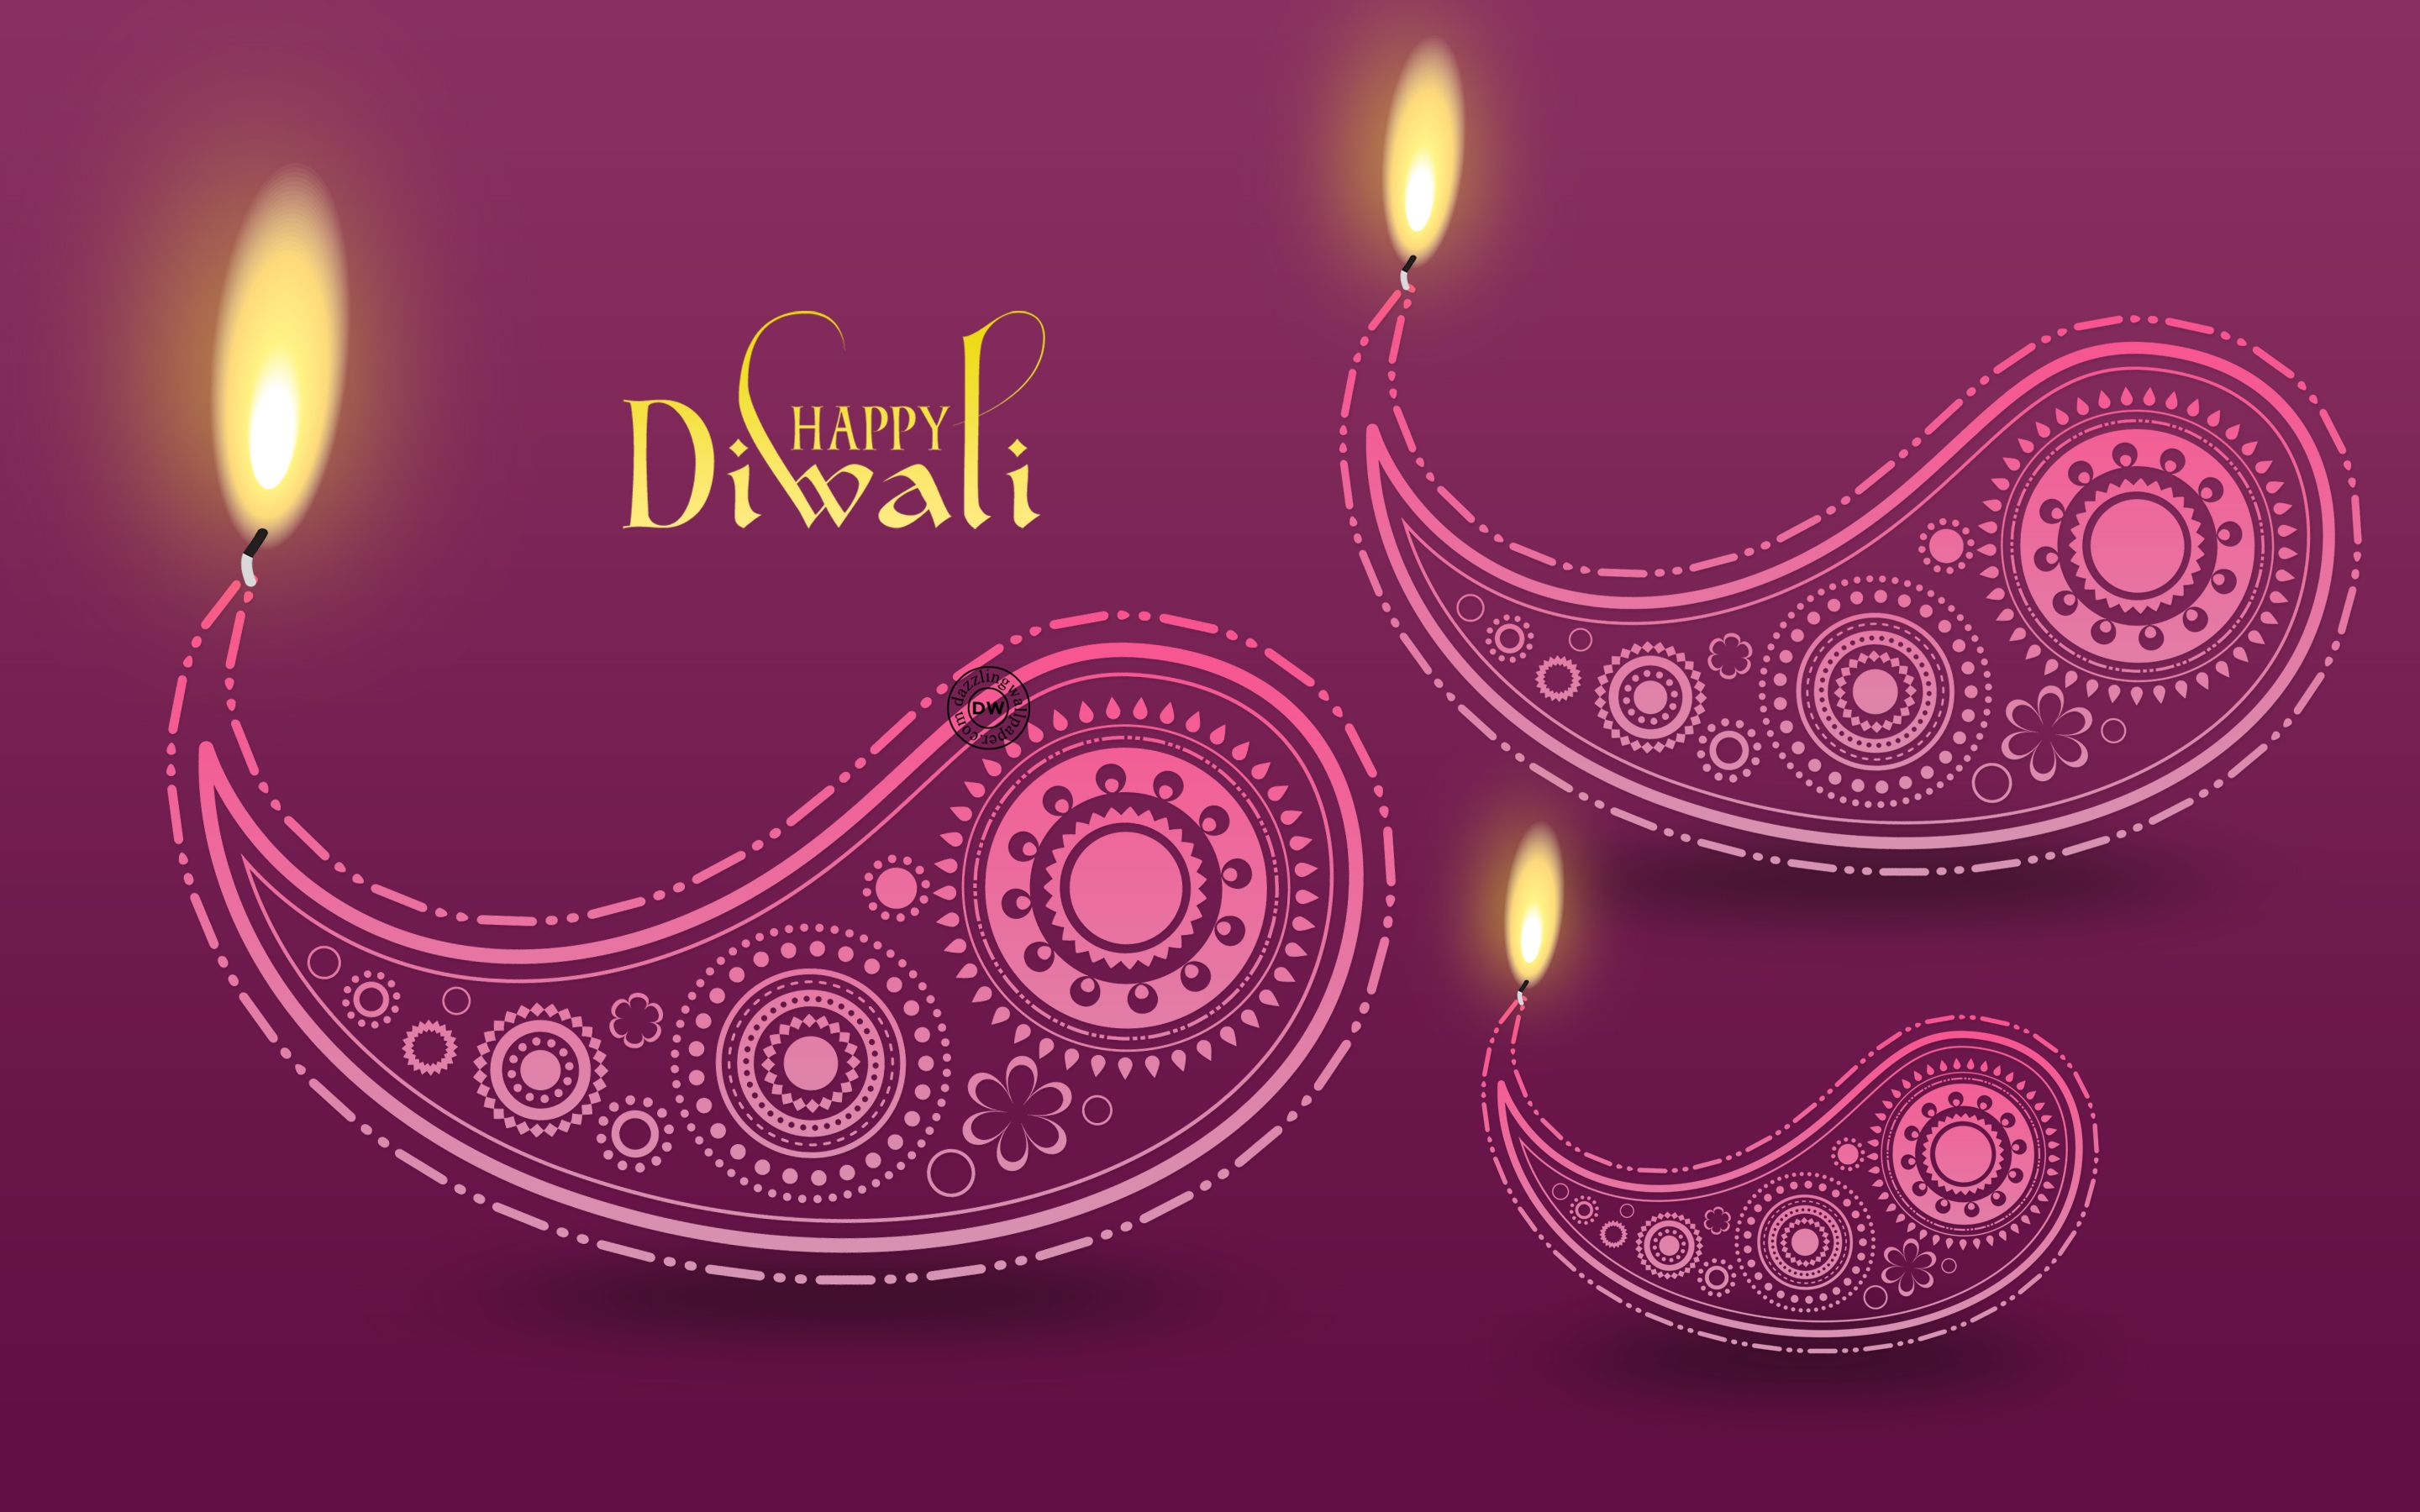 Diwali Hd Wallpaper With Beautiful Diva Happy Diwali Hd Wallpaper